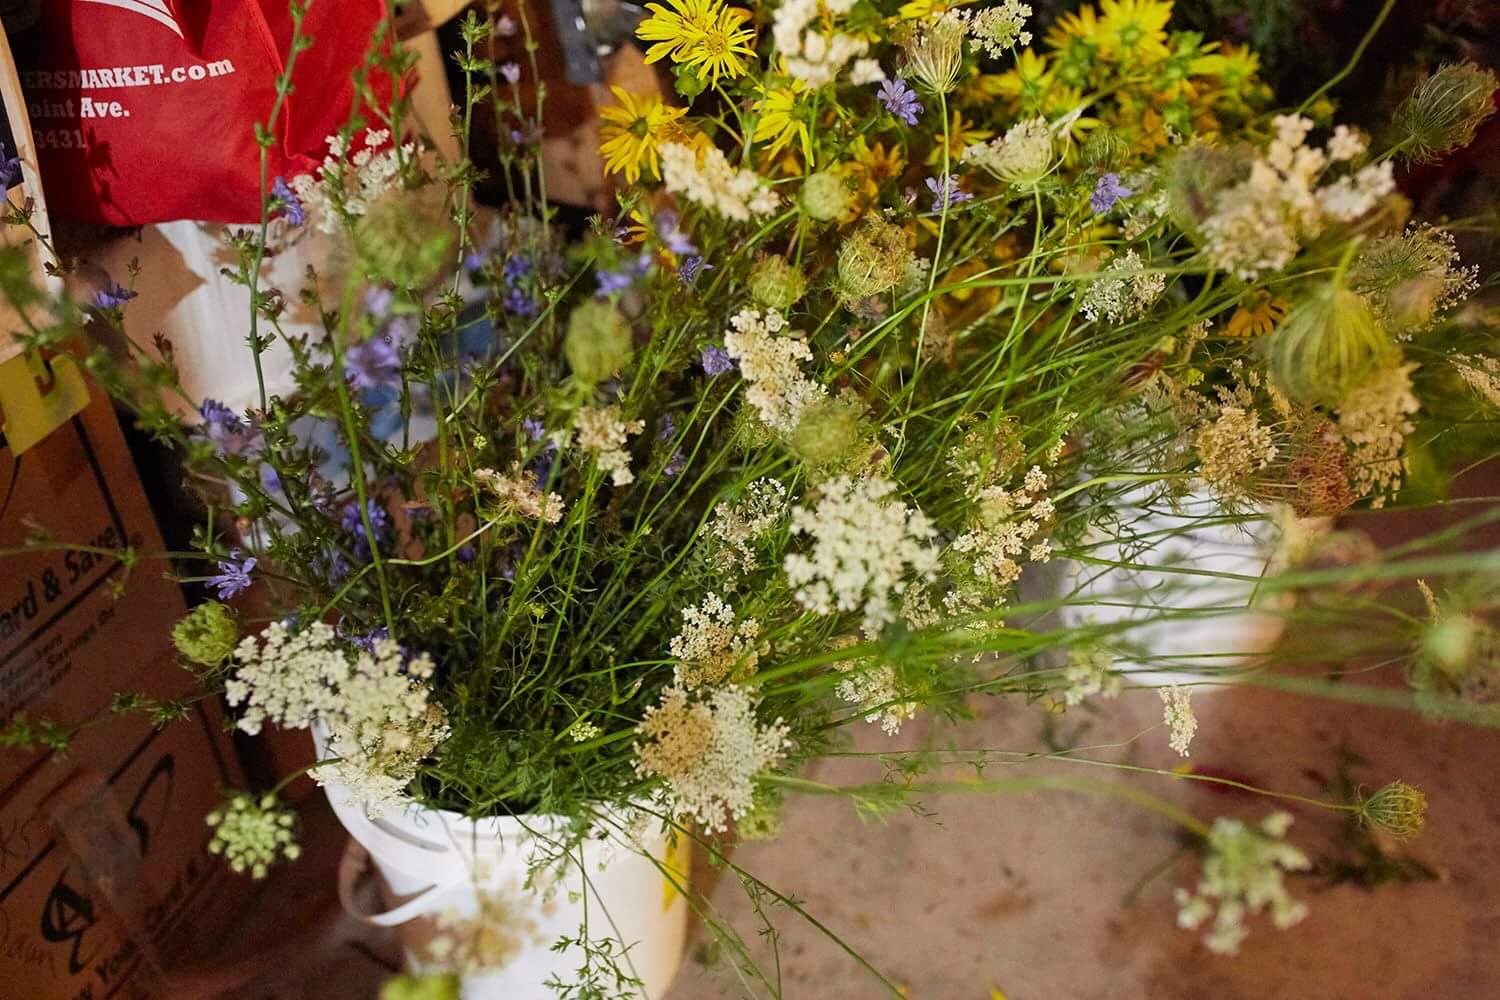 Locally Foraged Wildflowers in preparation for an end of summer wedding.